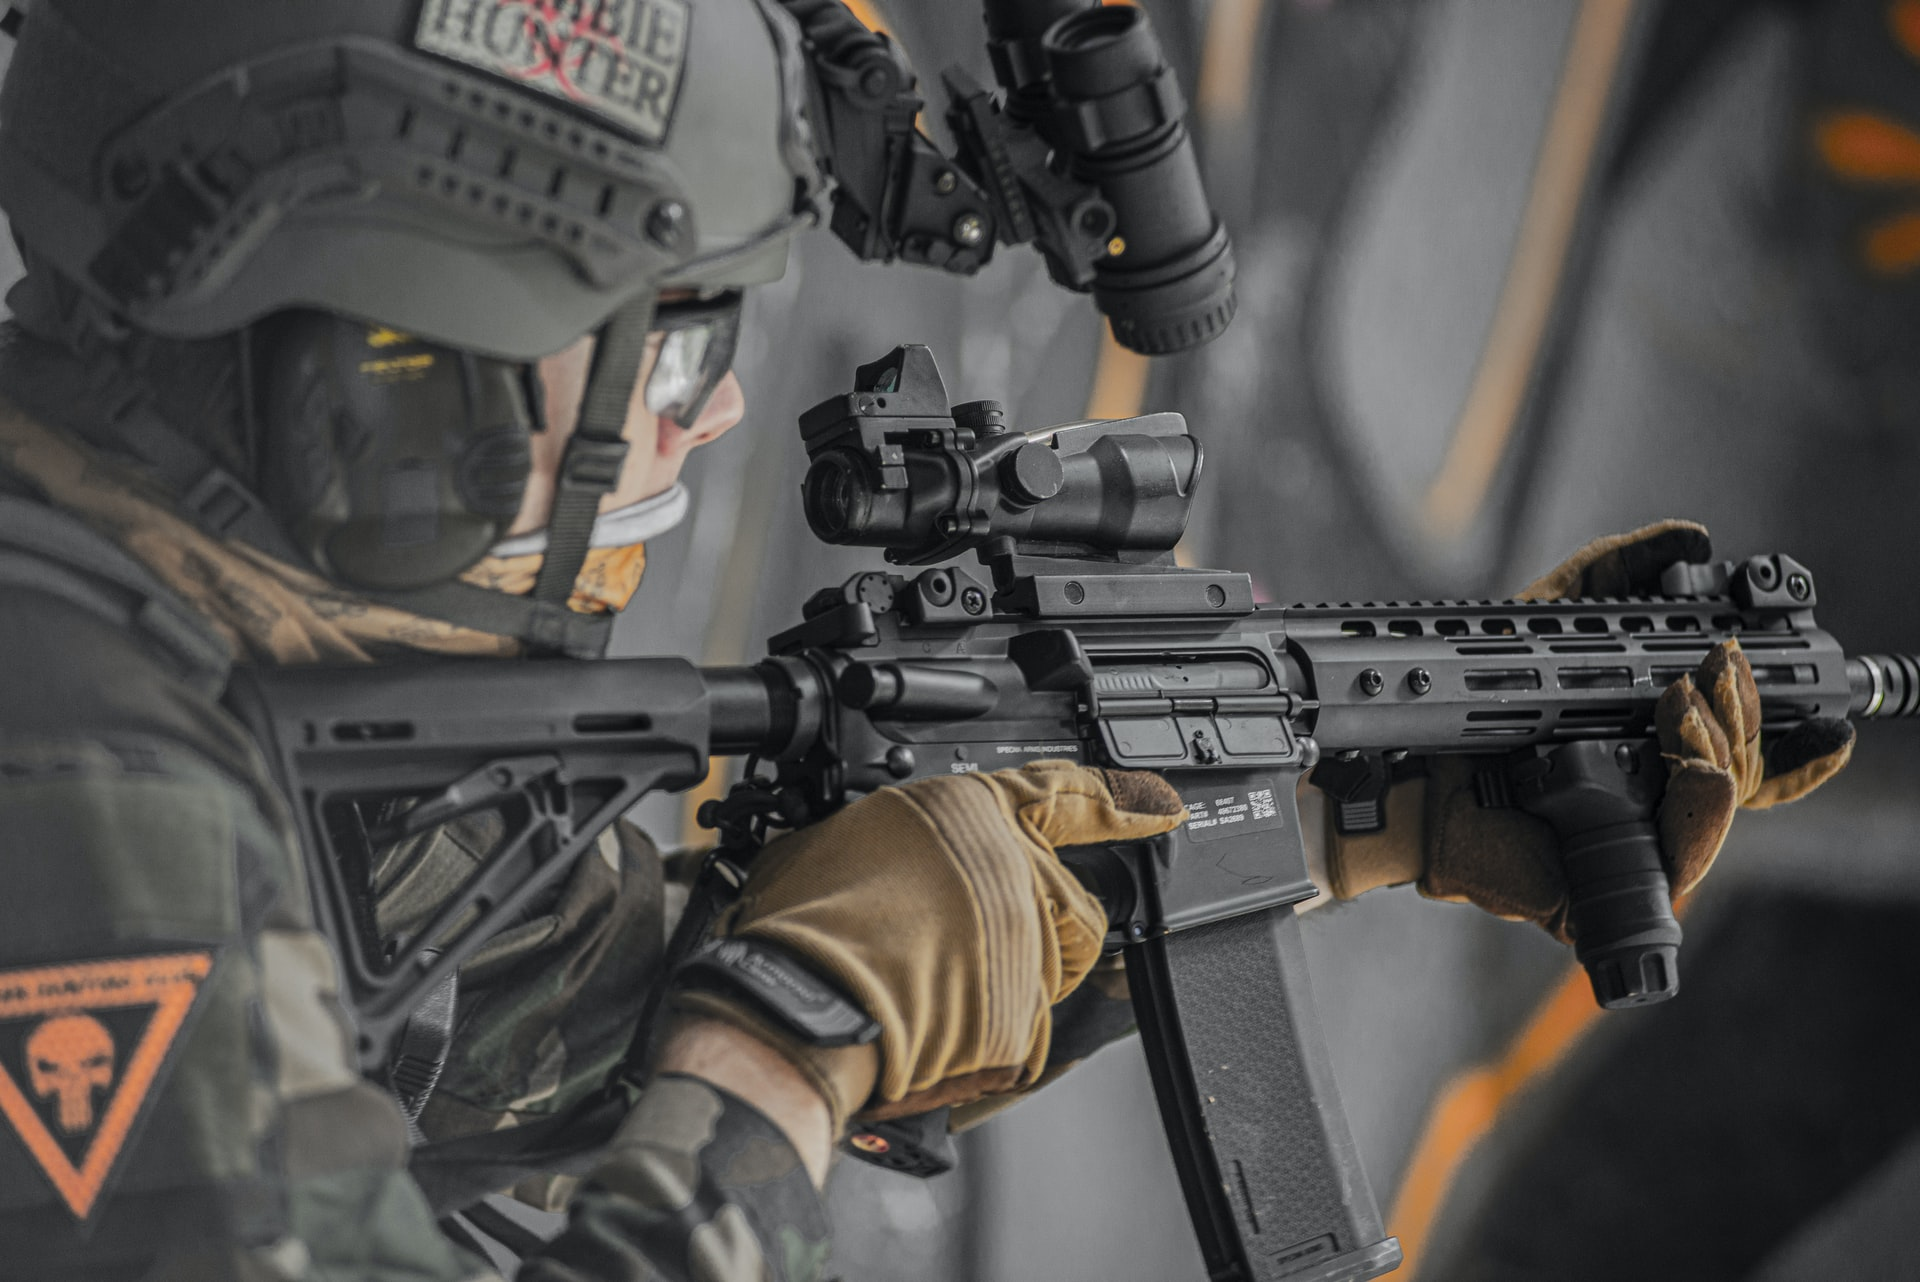 The history of the airsoft in the USA